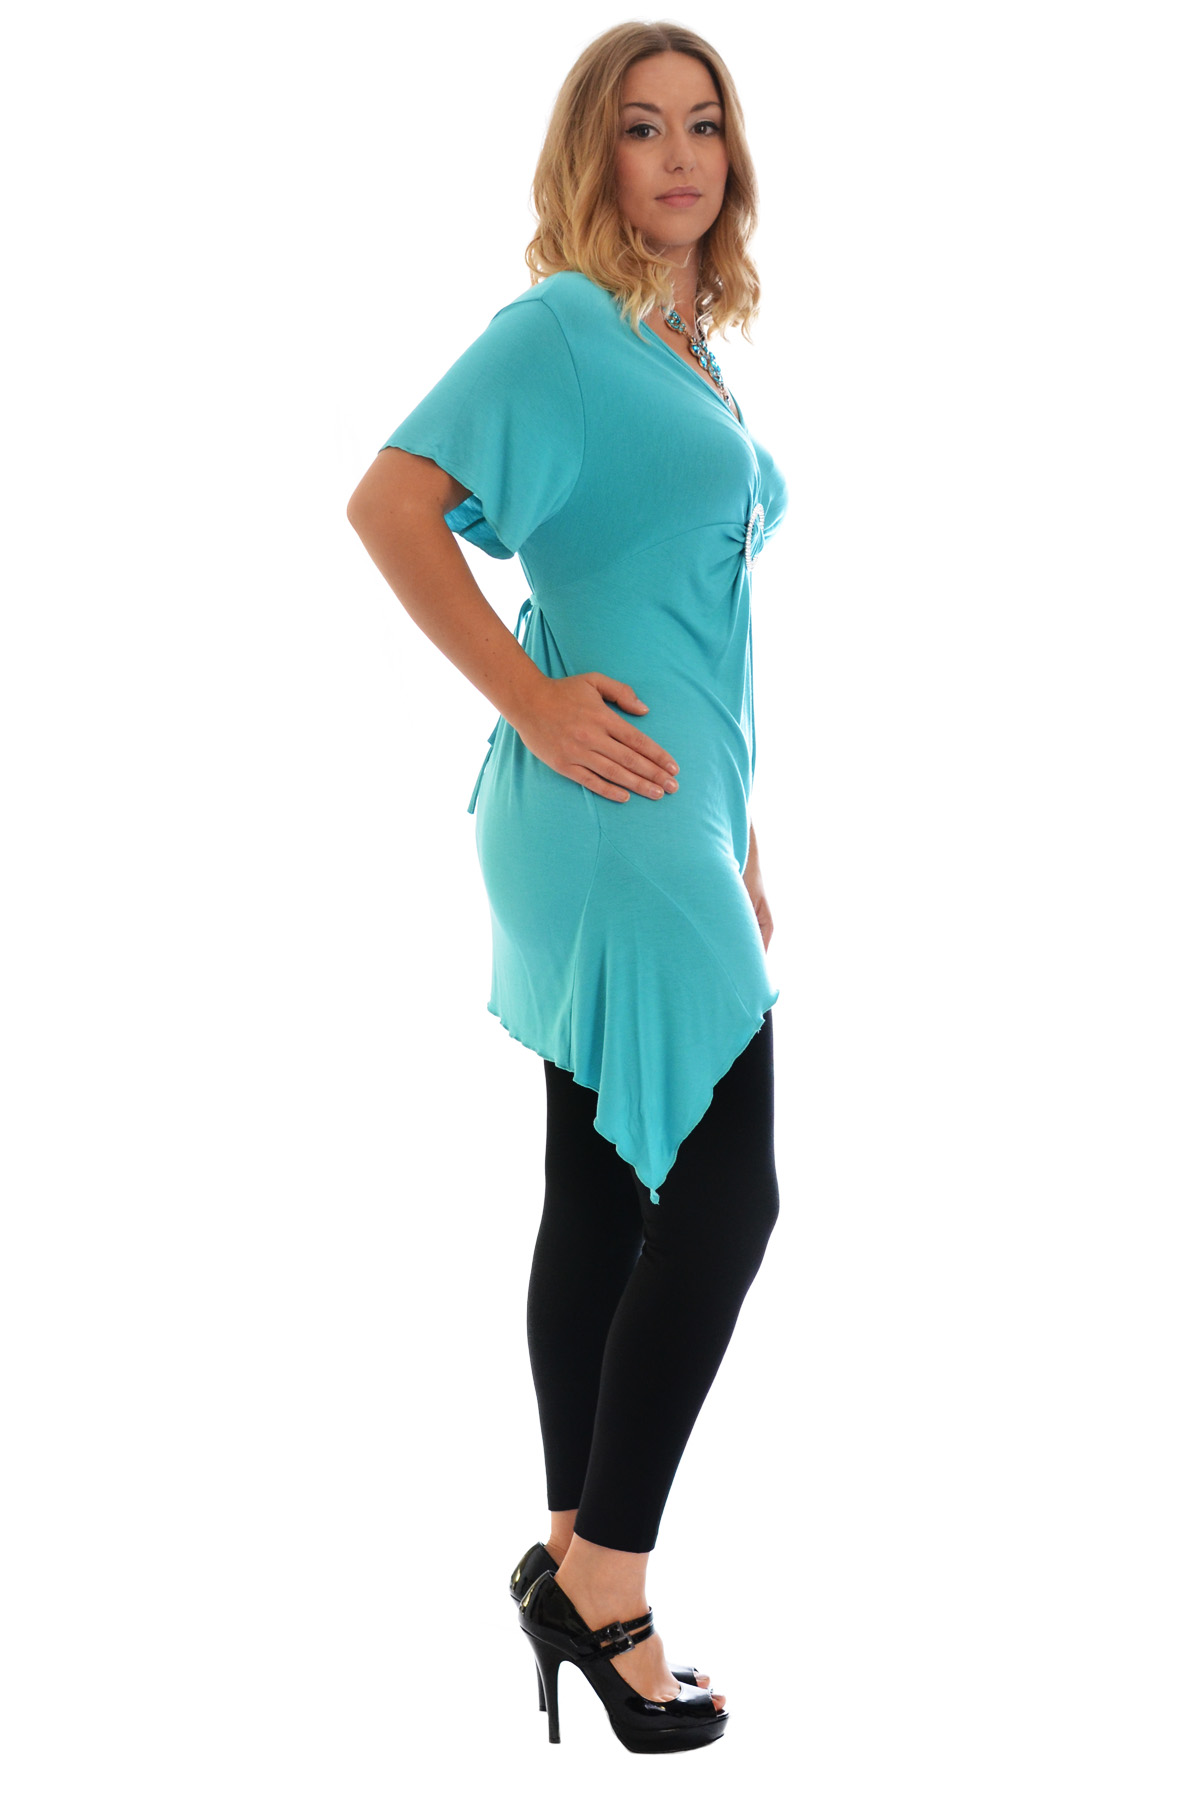 New-Womens-Plus-Size-Top-Ladies-T-Shirt-Buckle-Stud-A-Line-Asymmetric-Nouvelle thumbnail 69